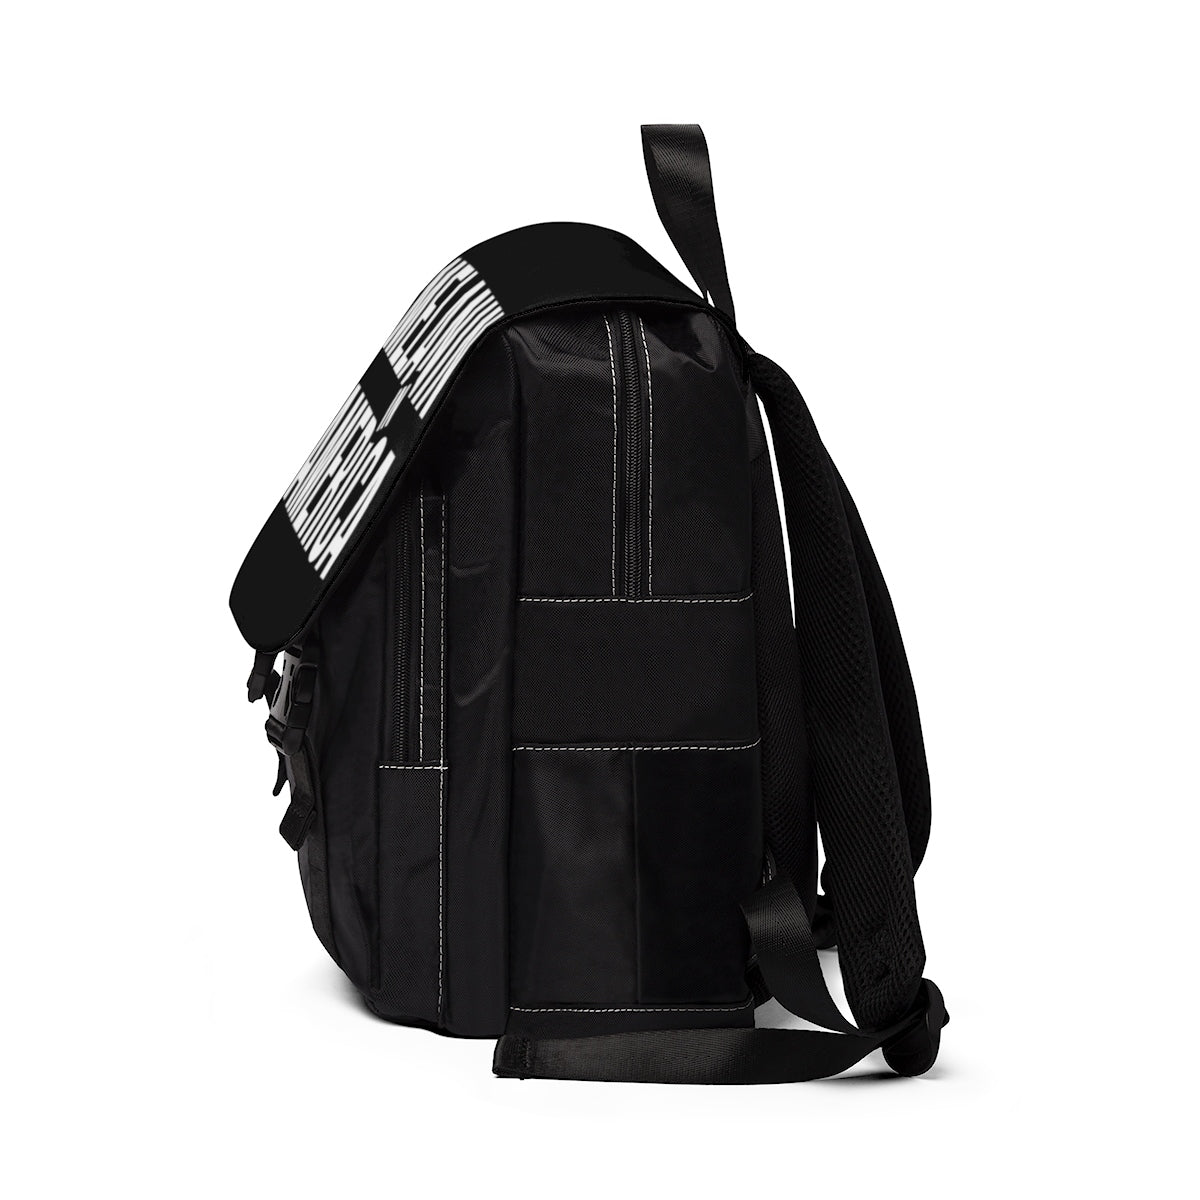 Melanin in America Unisex Casual Shoulder Backpack